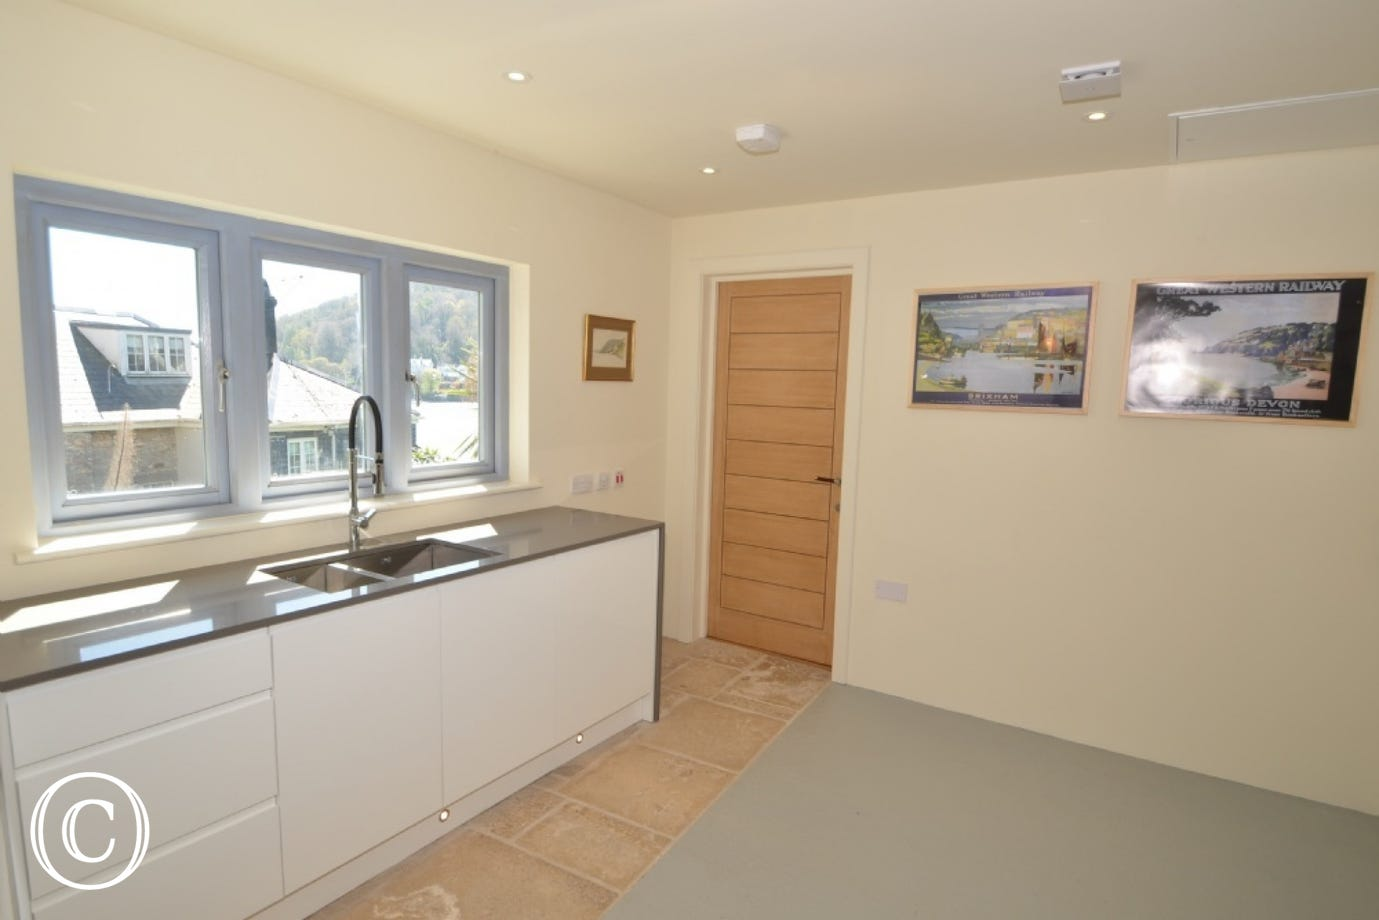 Utility room at The Edge in Kingswear